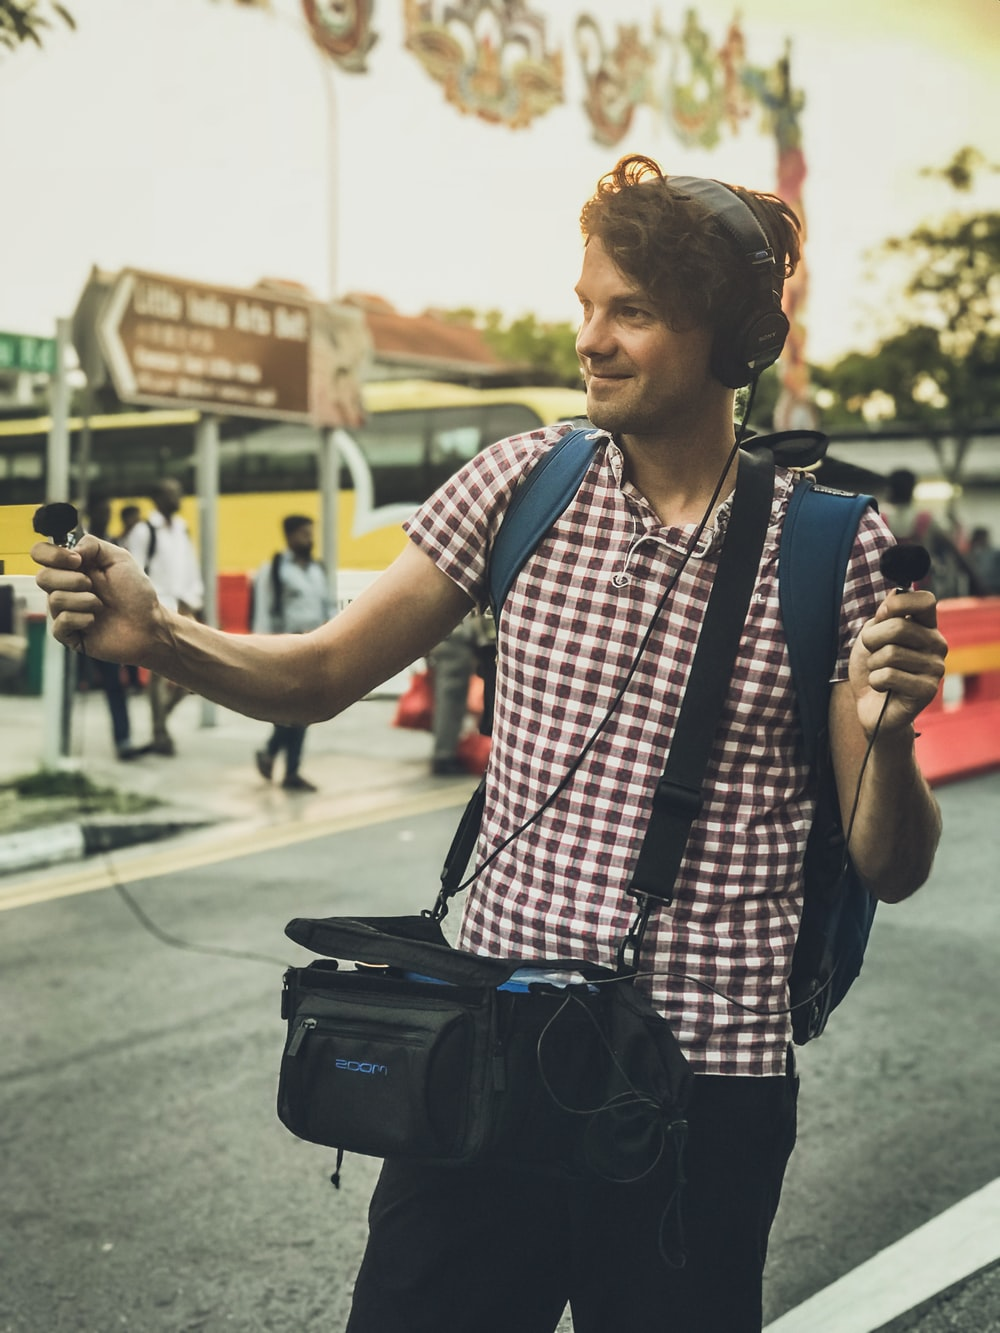 man carrying audio device and microphone